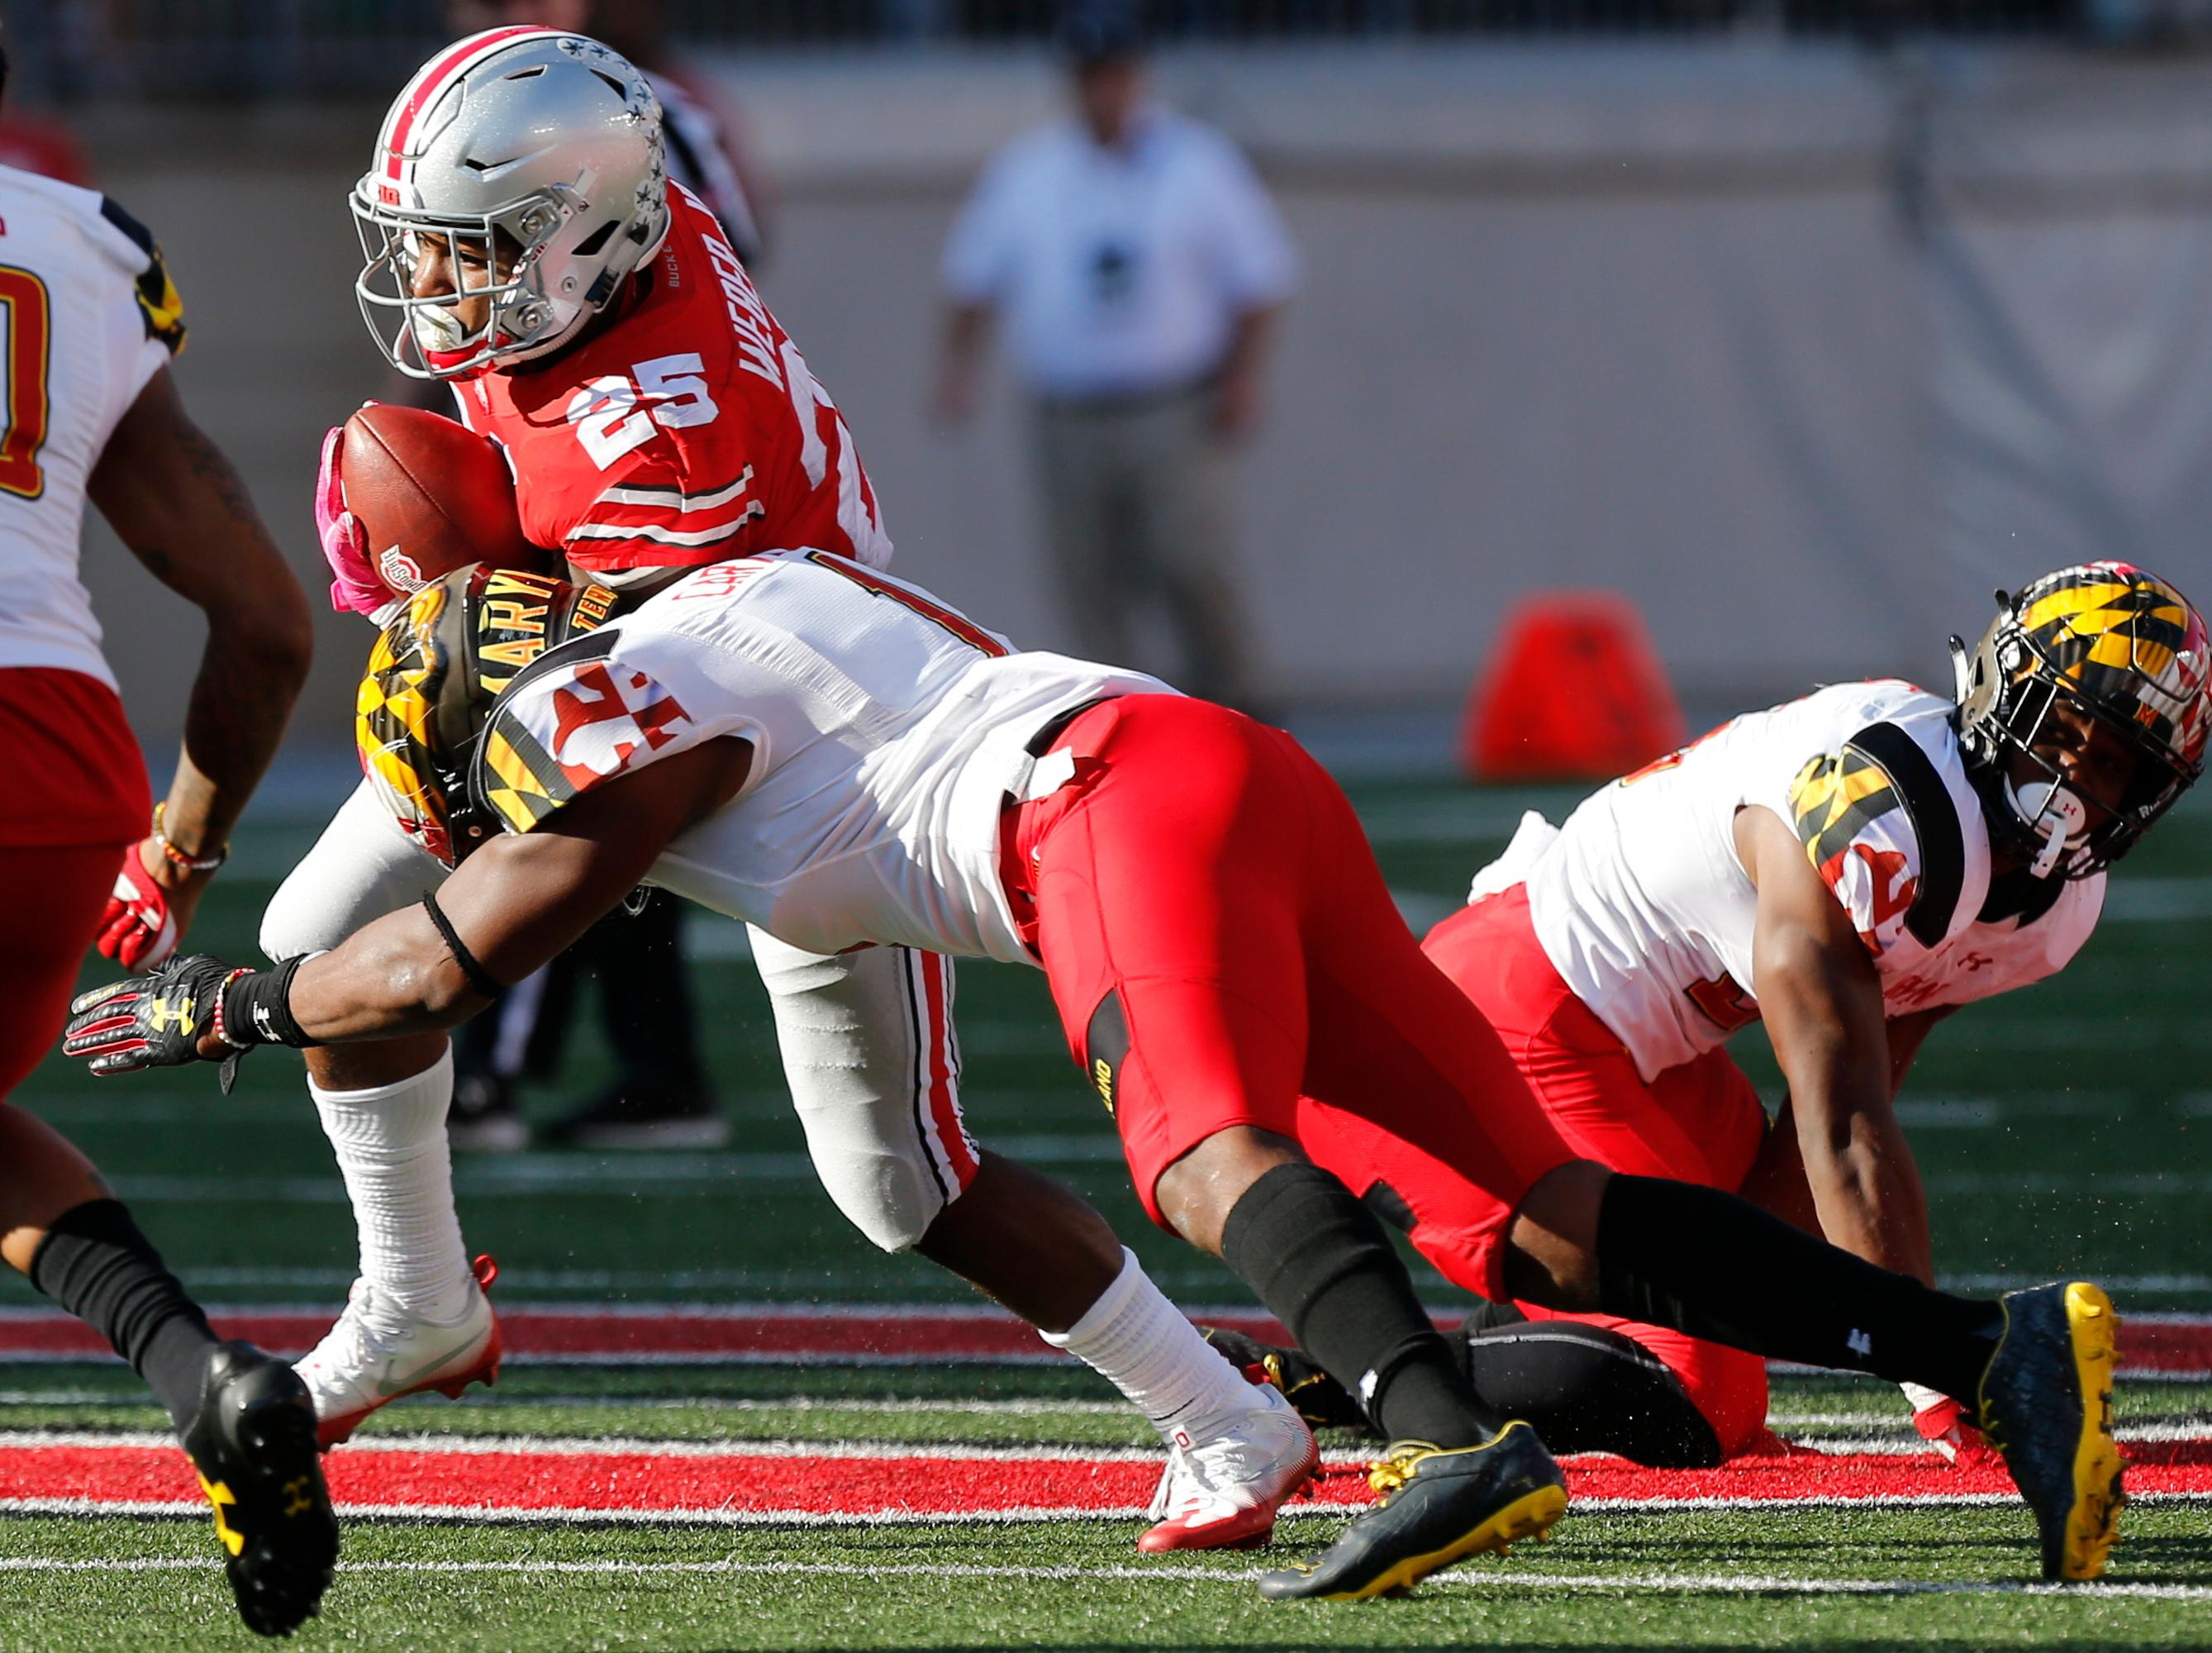 Ohio State running back Mike Weber, left, runs the ball against Maryland linebacker Jermaine Carter during the first half of an NCAA college football game Saturday, Oct. 7, 2017, in Columbus, Ohio. (AP Photo/Jay LaPrete)